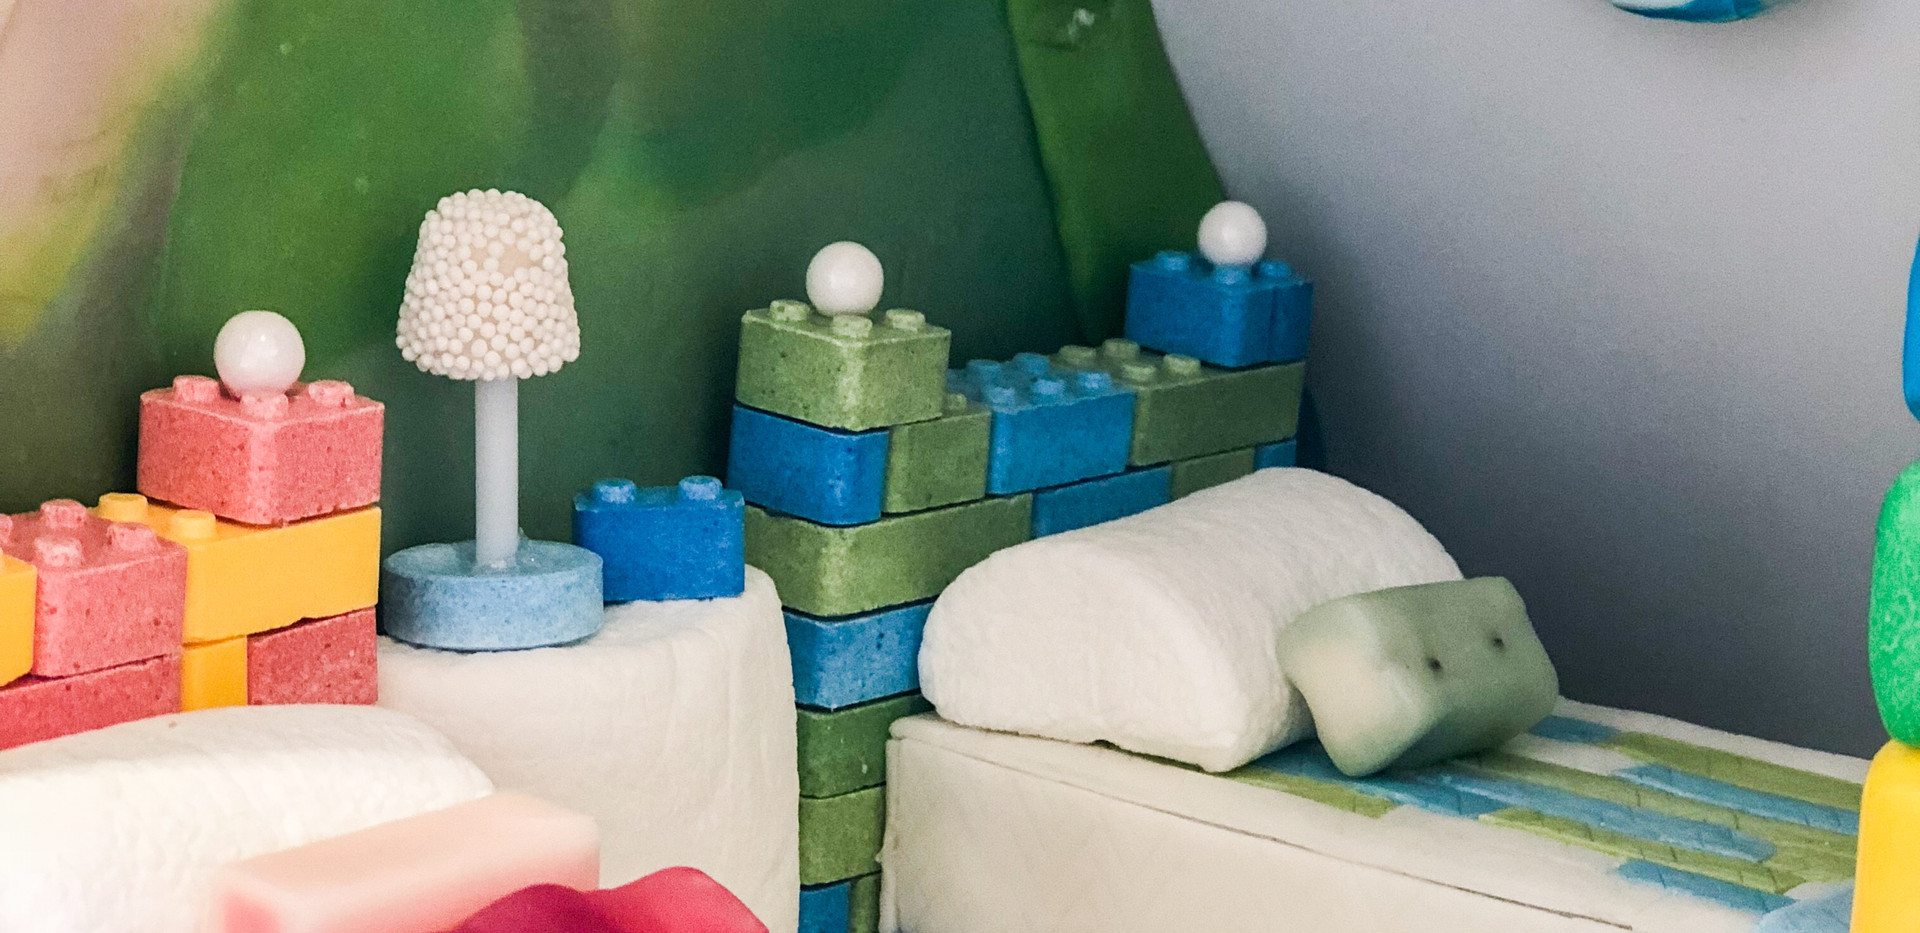 Lego Beds, Gum Floor & Quilts, Marshmallow Pillows with Hi-Chew Accent Pillows